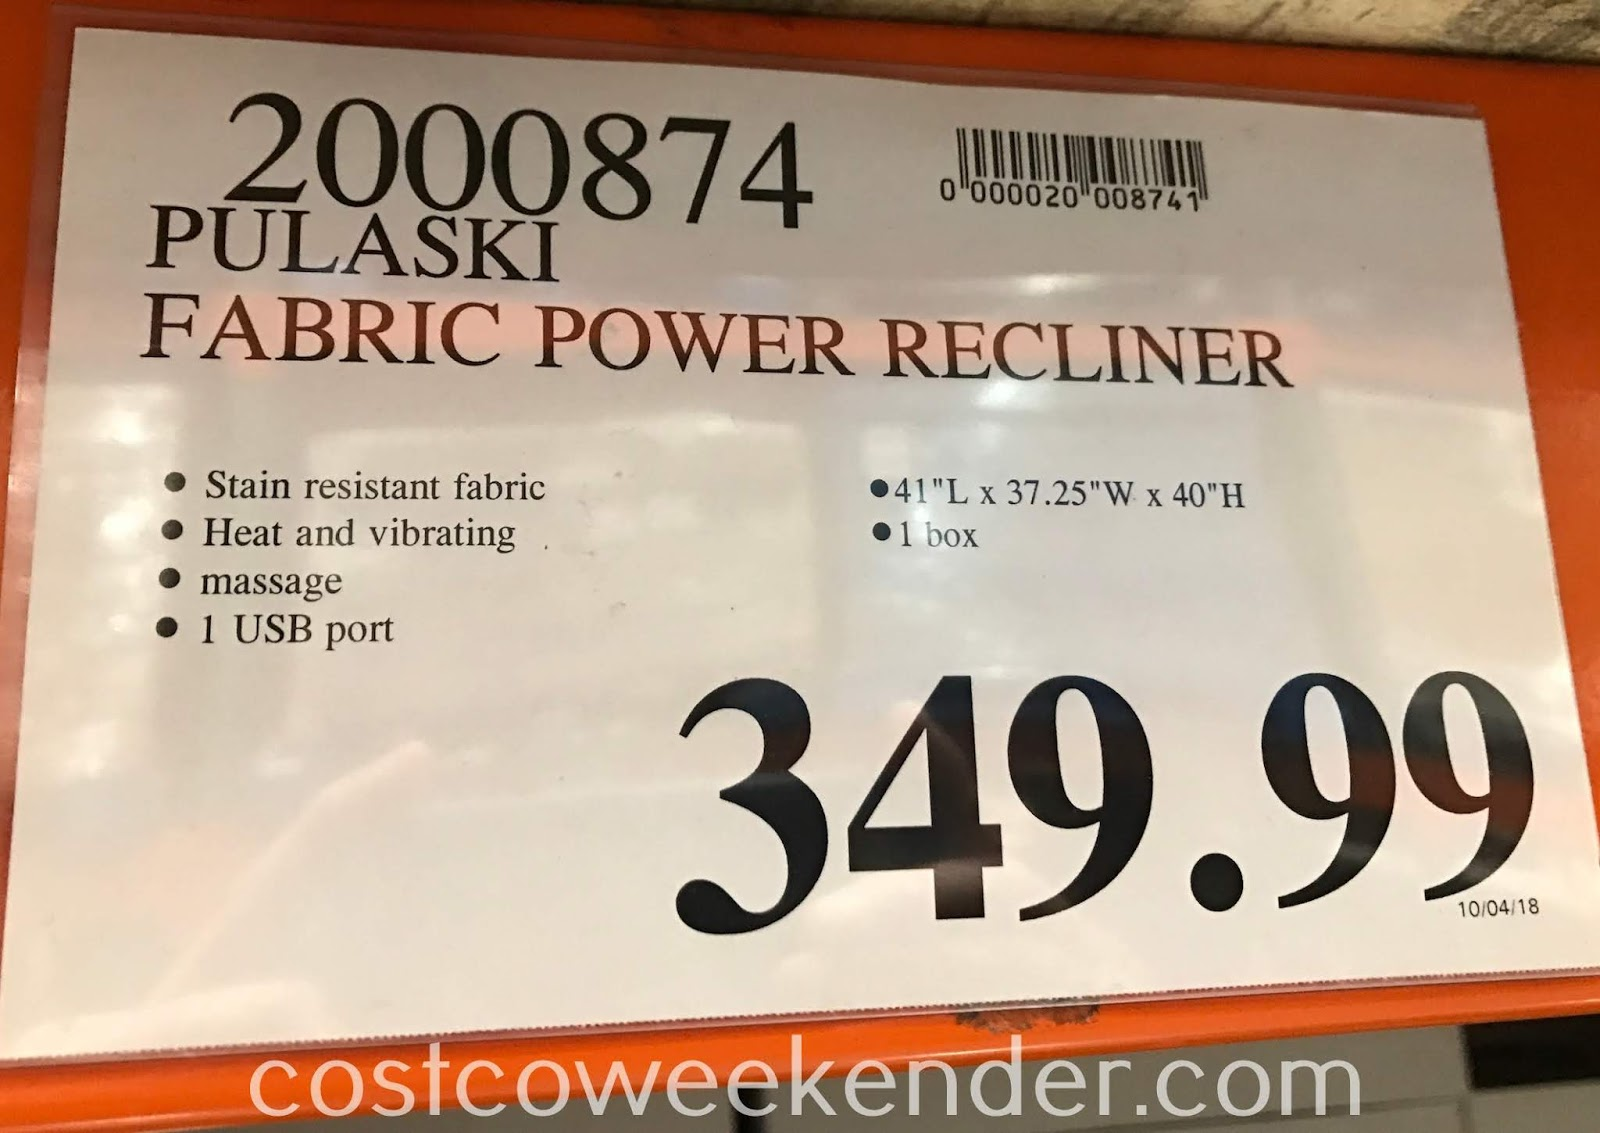 Deal for the Pulaski Fabric Power Recliner at Costco